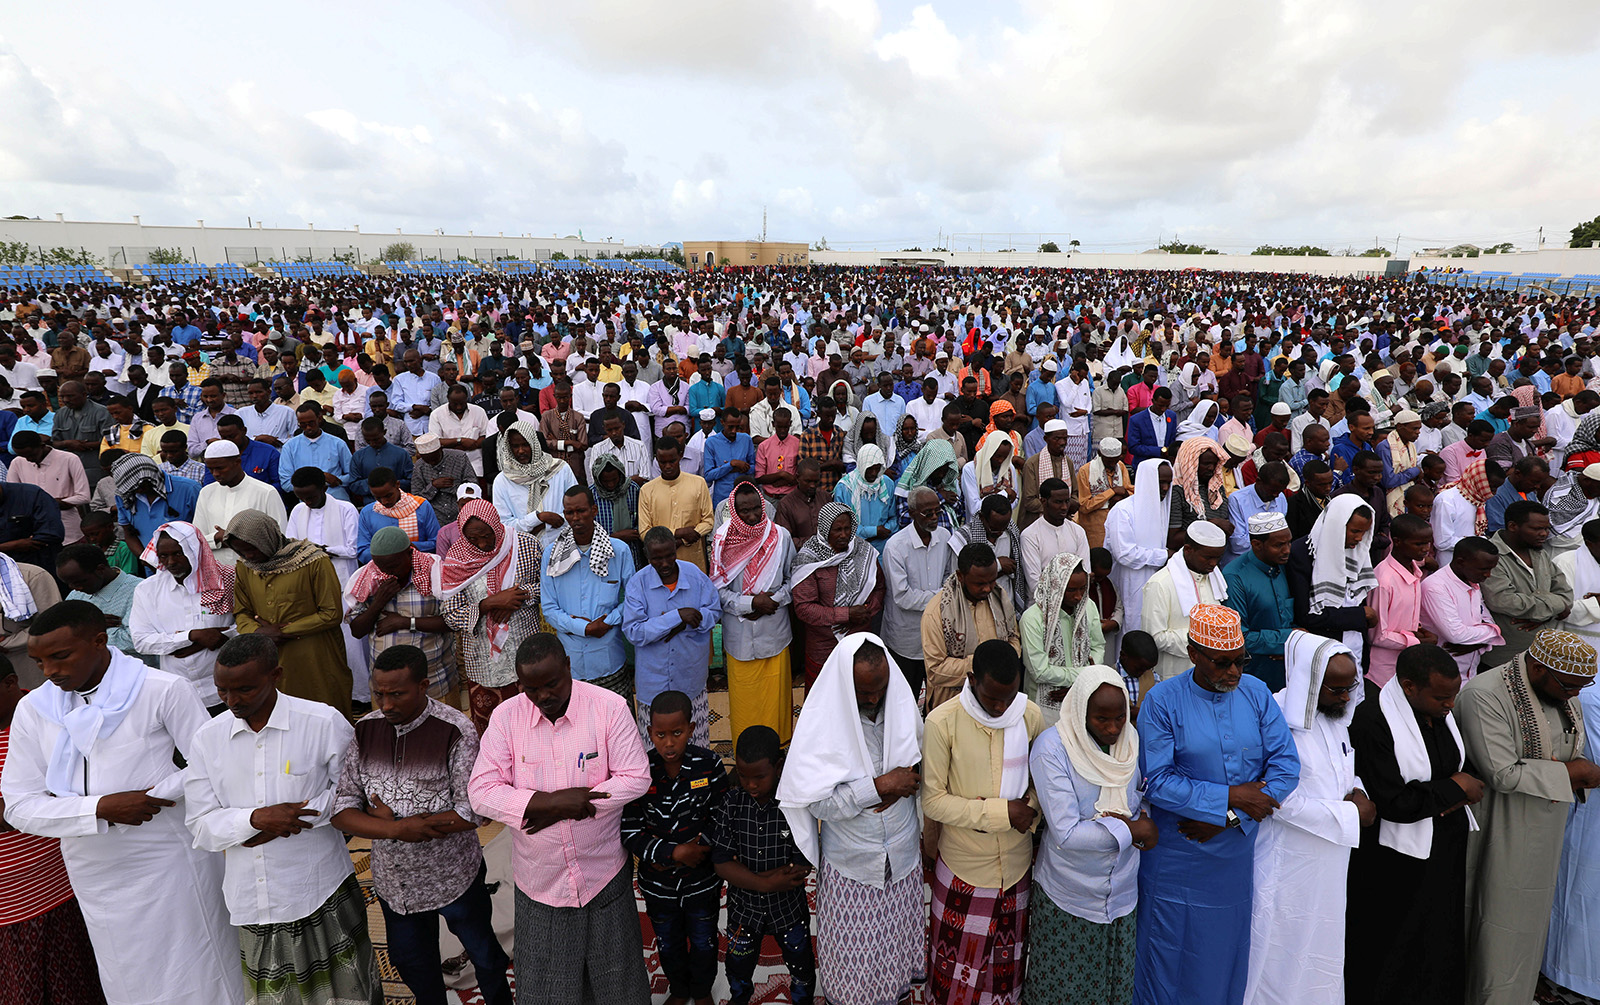 Muslim faithful attend Eid al-Fitr prayers to mark the end of the holy fasting month of Ramadan inside the soccer stadium in Hodan district of Mogadishu